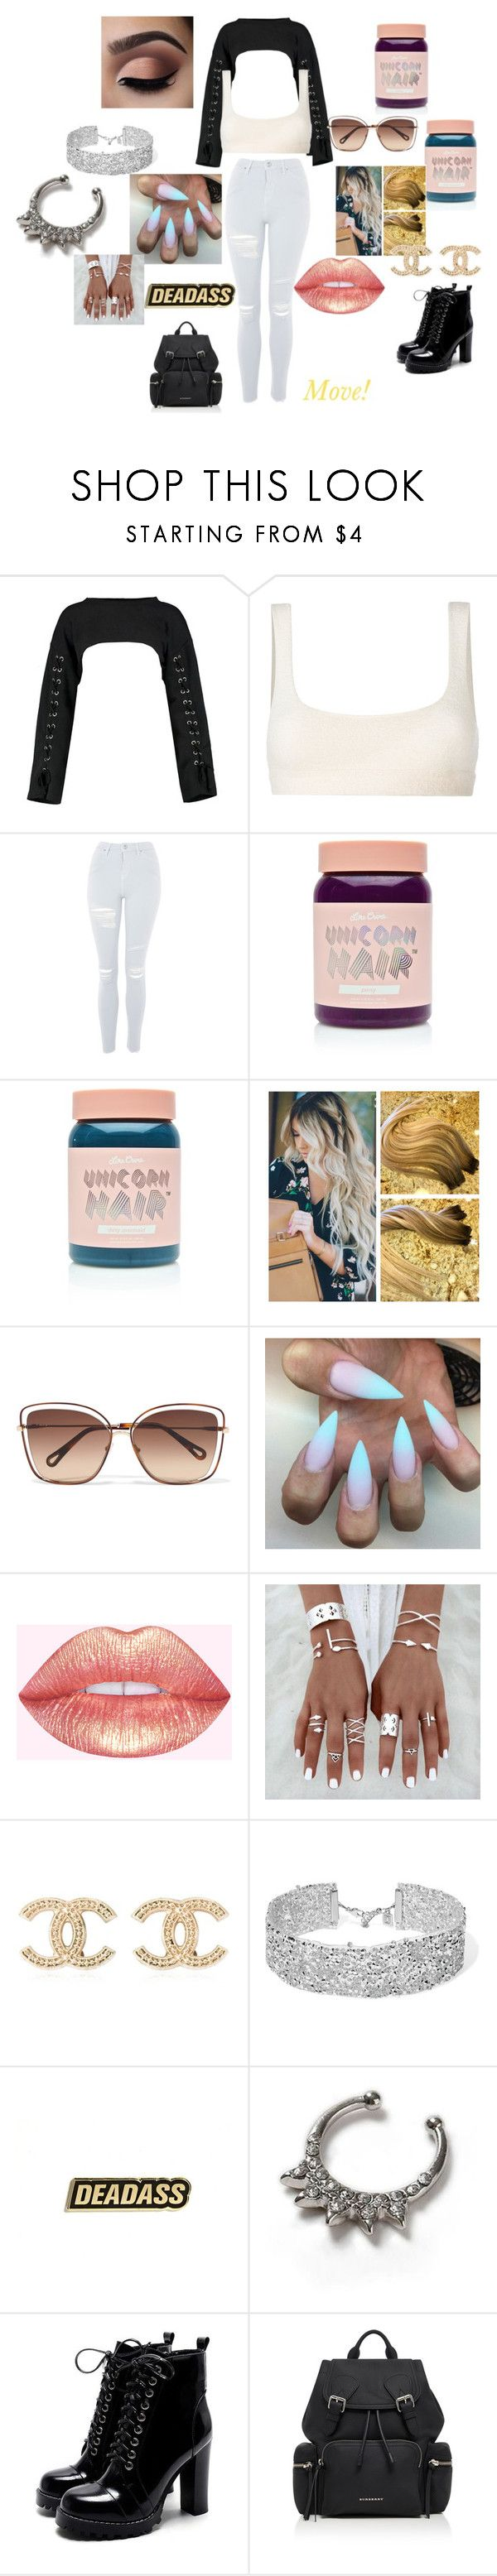 """""""Move!"""" by calpalclifford221 on Polyvore featuring Boohoo, Yeezy by Kanye West, Topshop, Lime Crime, Chloé, Chanel, DANNIJO and Burberry"""